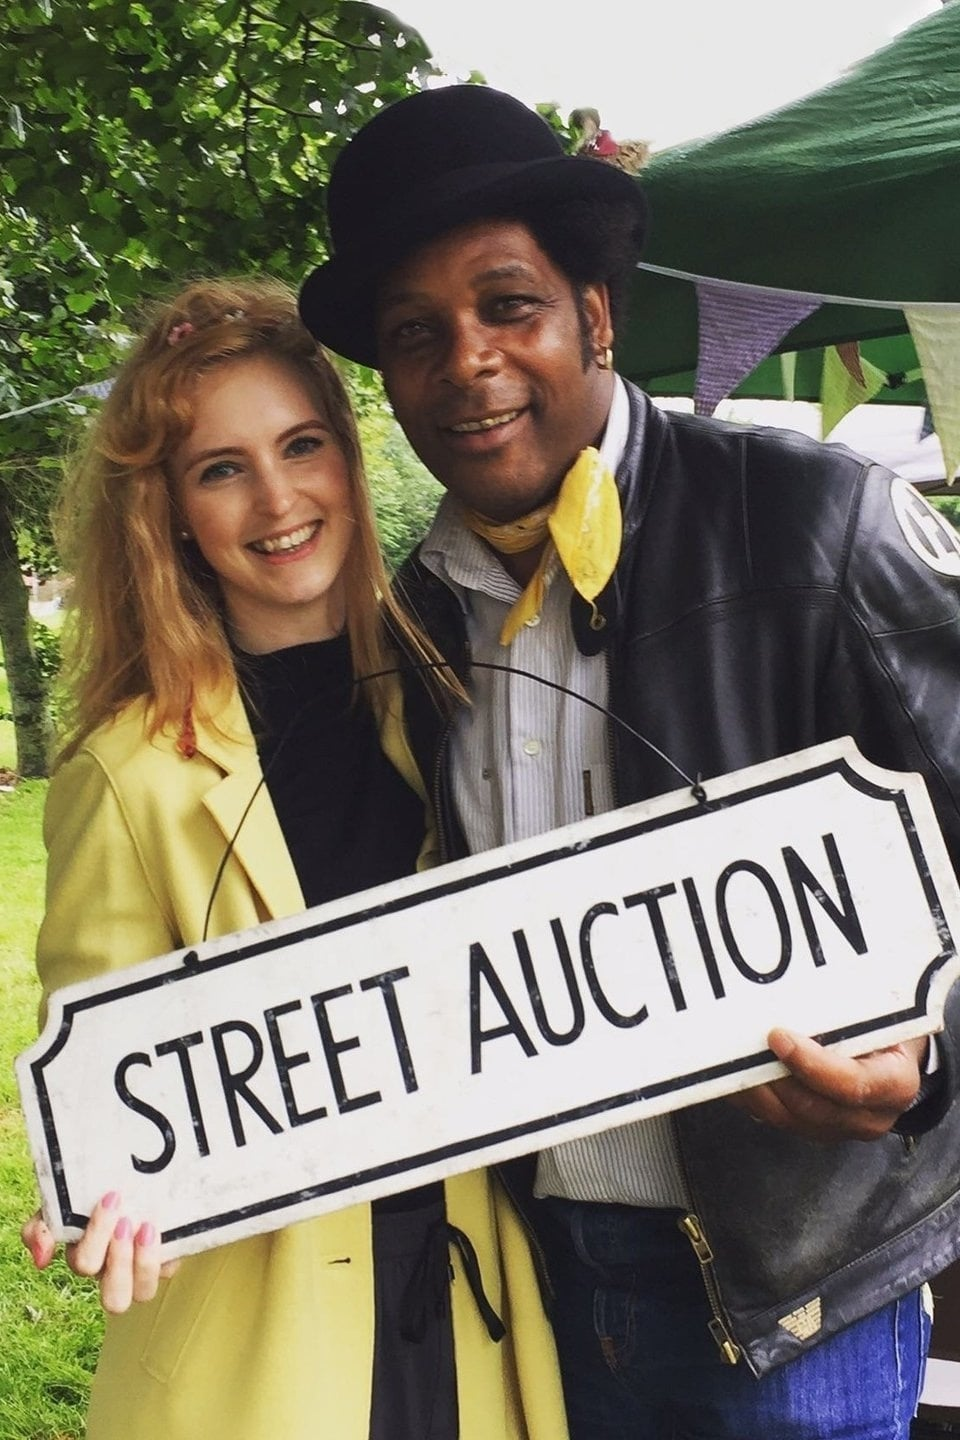 Street Auction on FREECABLE TV